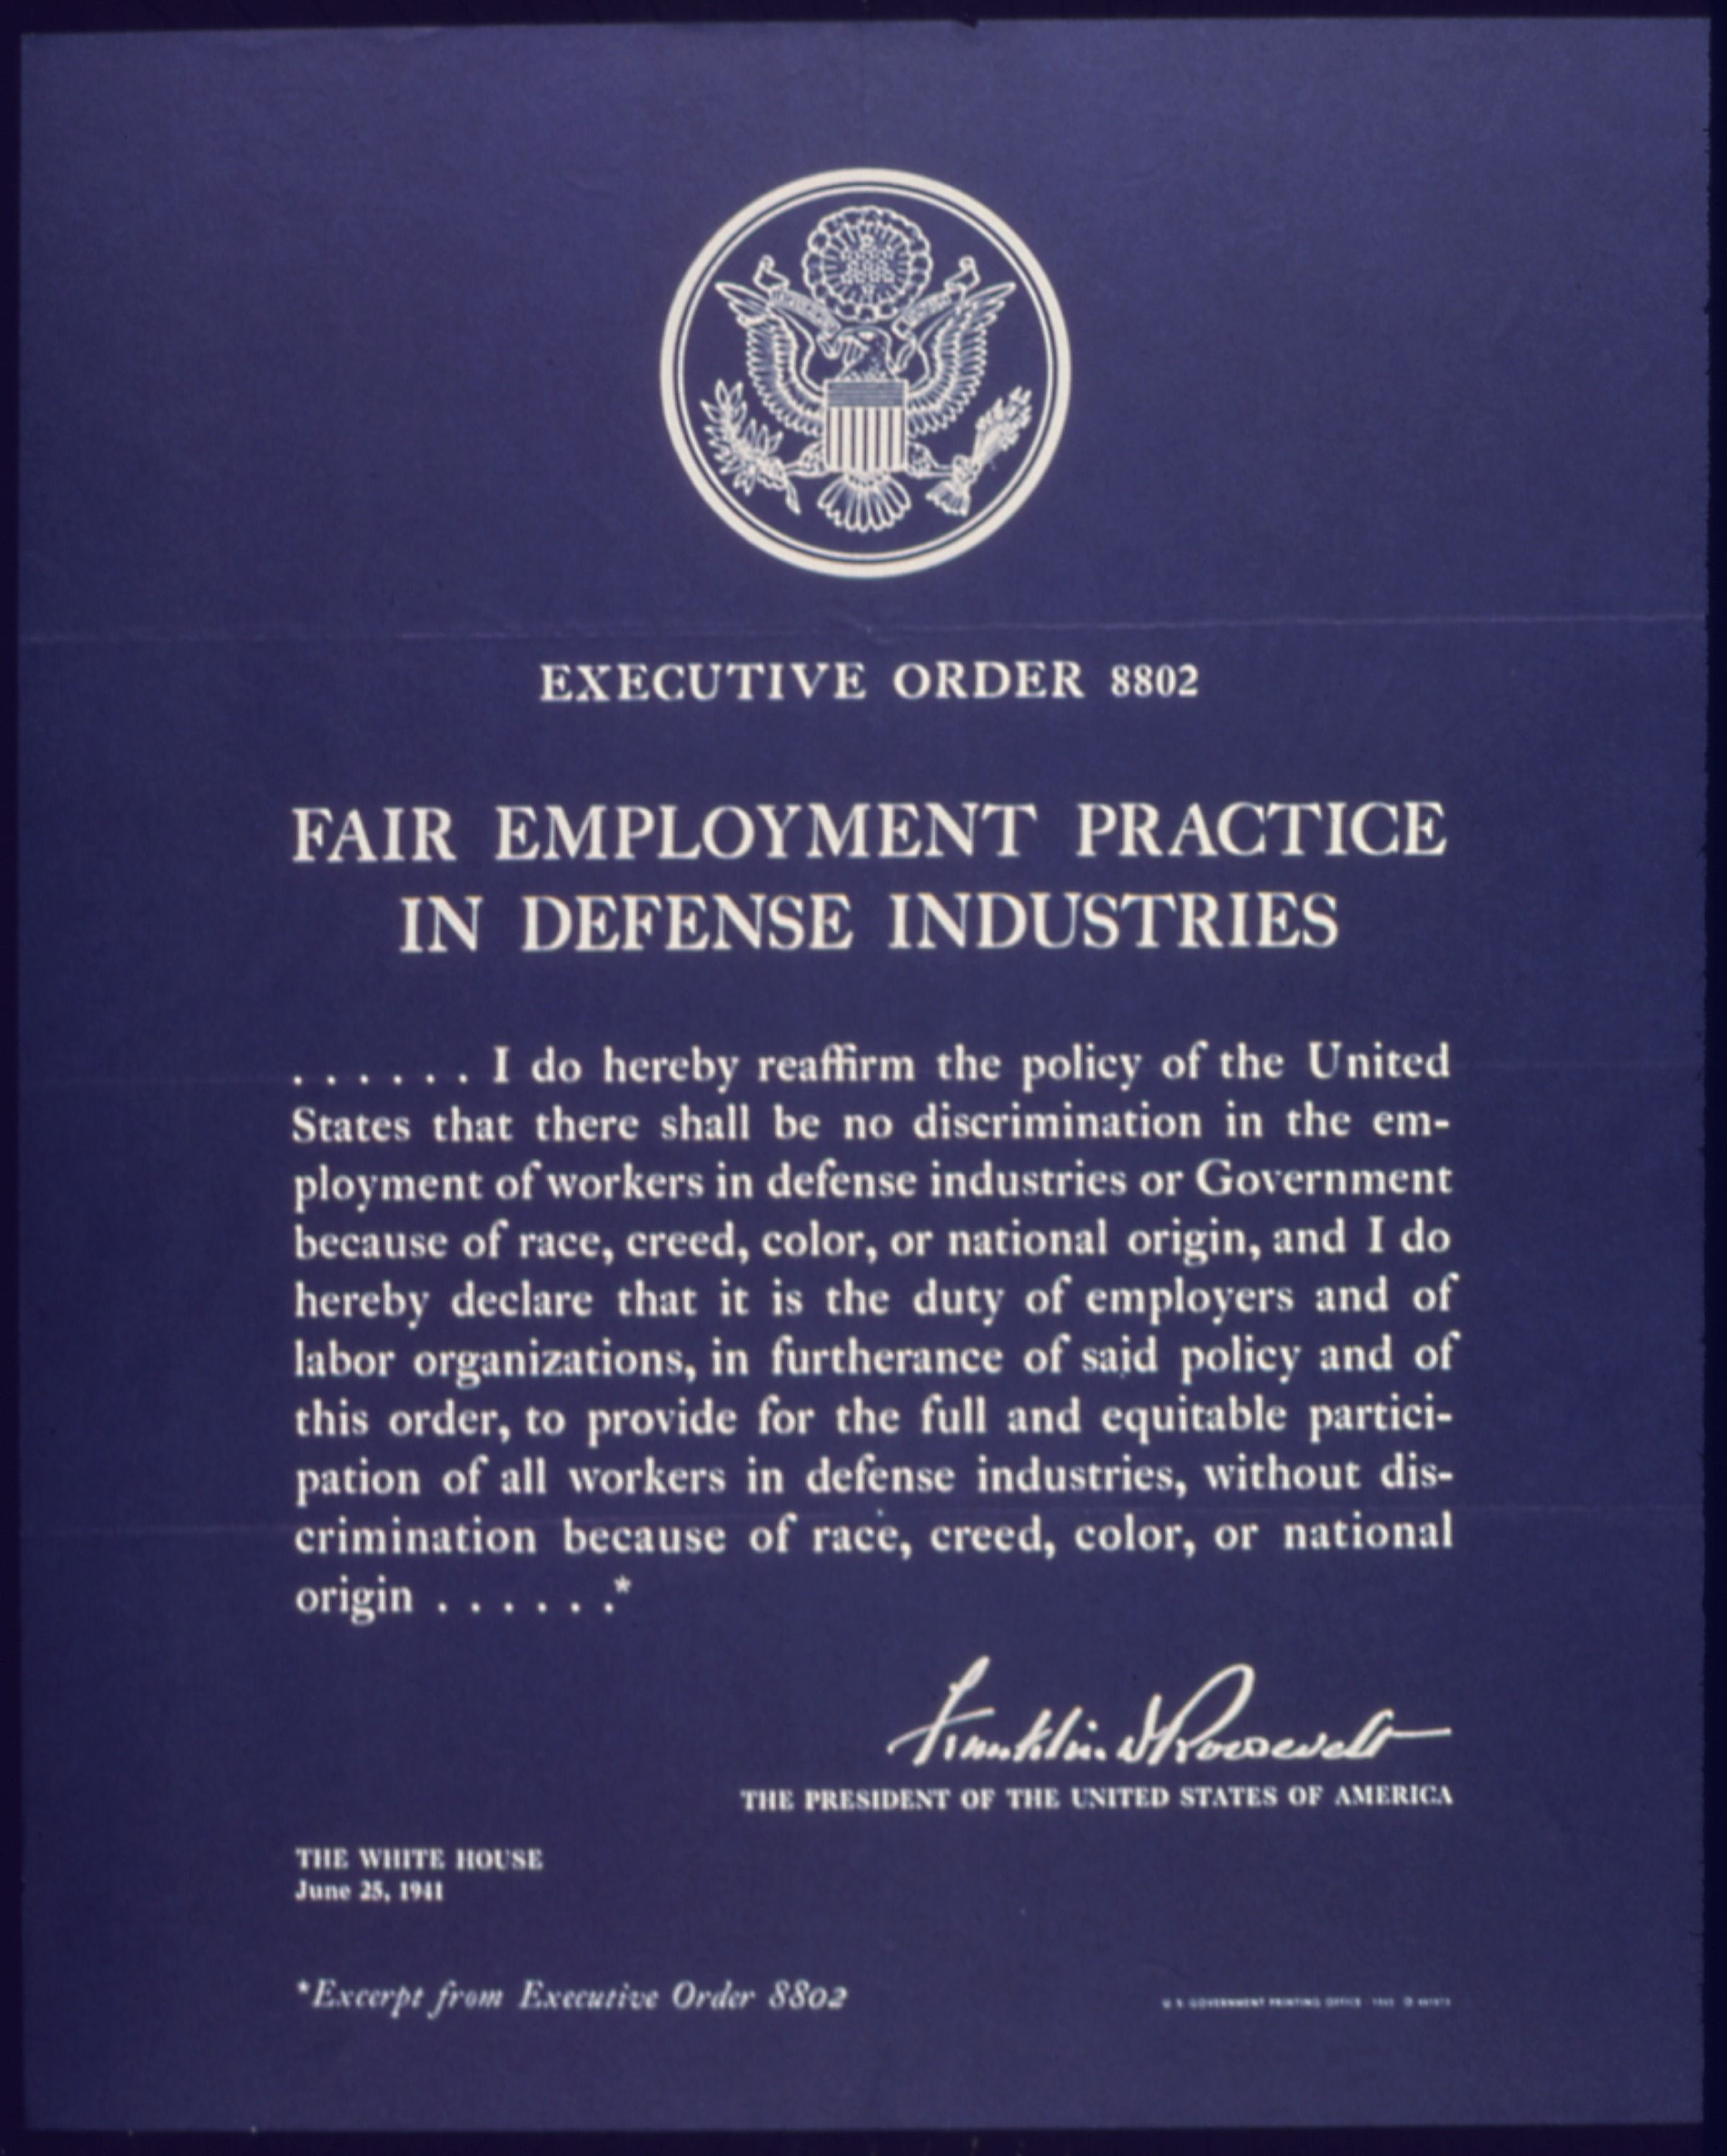 On June 25, 1941, The President Made This Official Policy